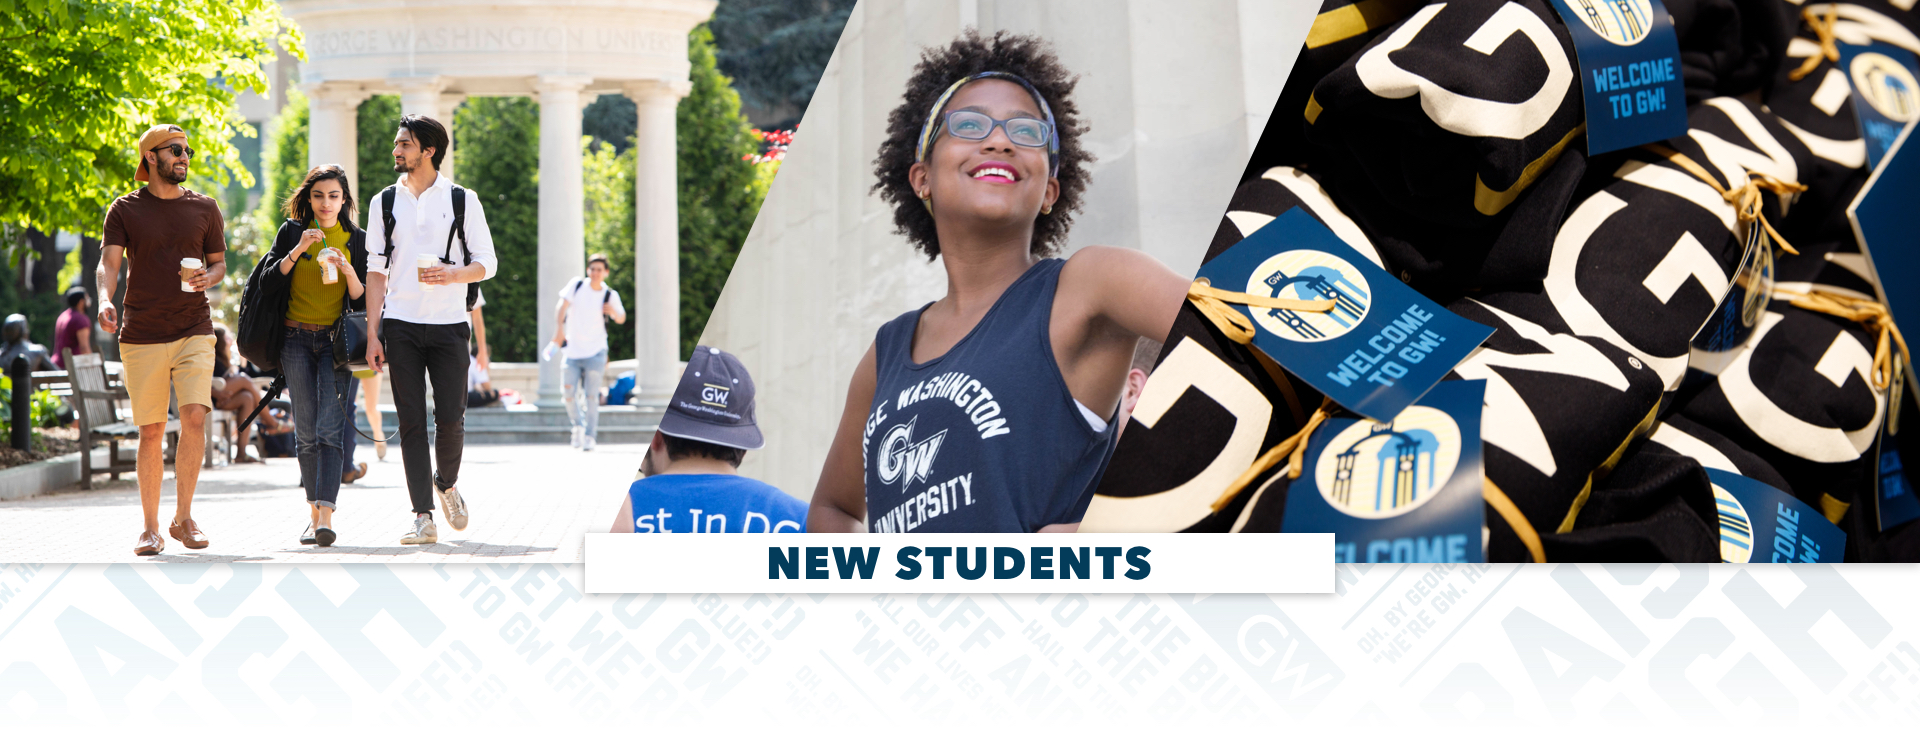 New Students, images of students on campus